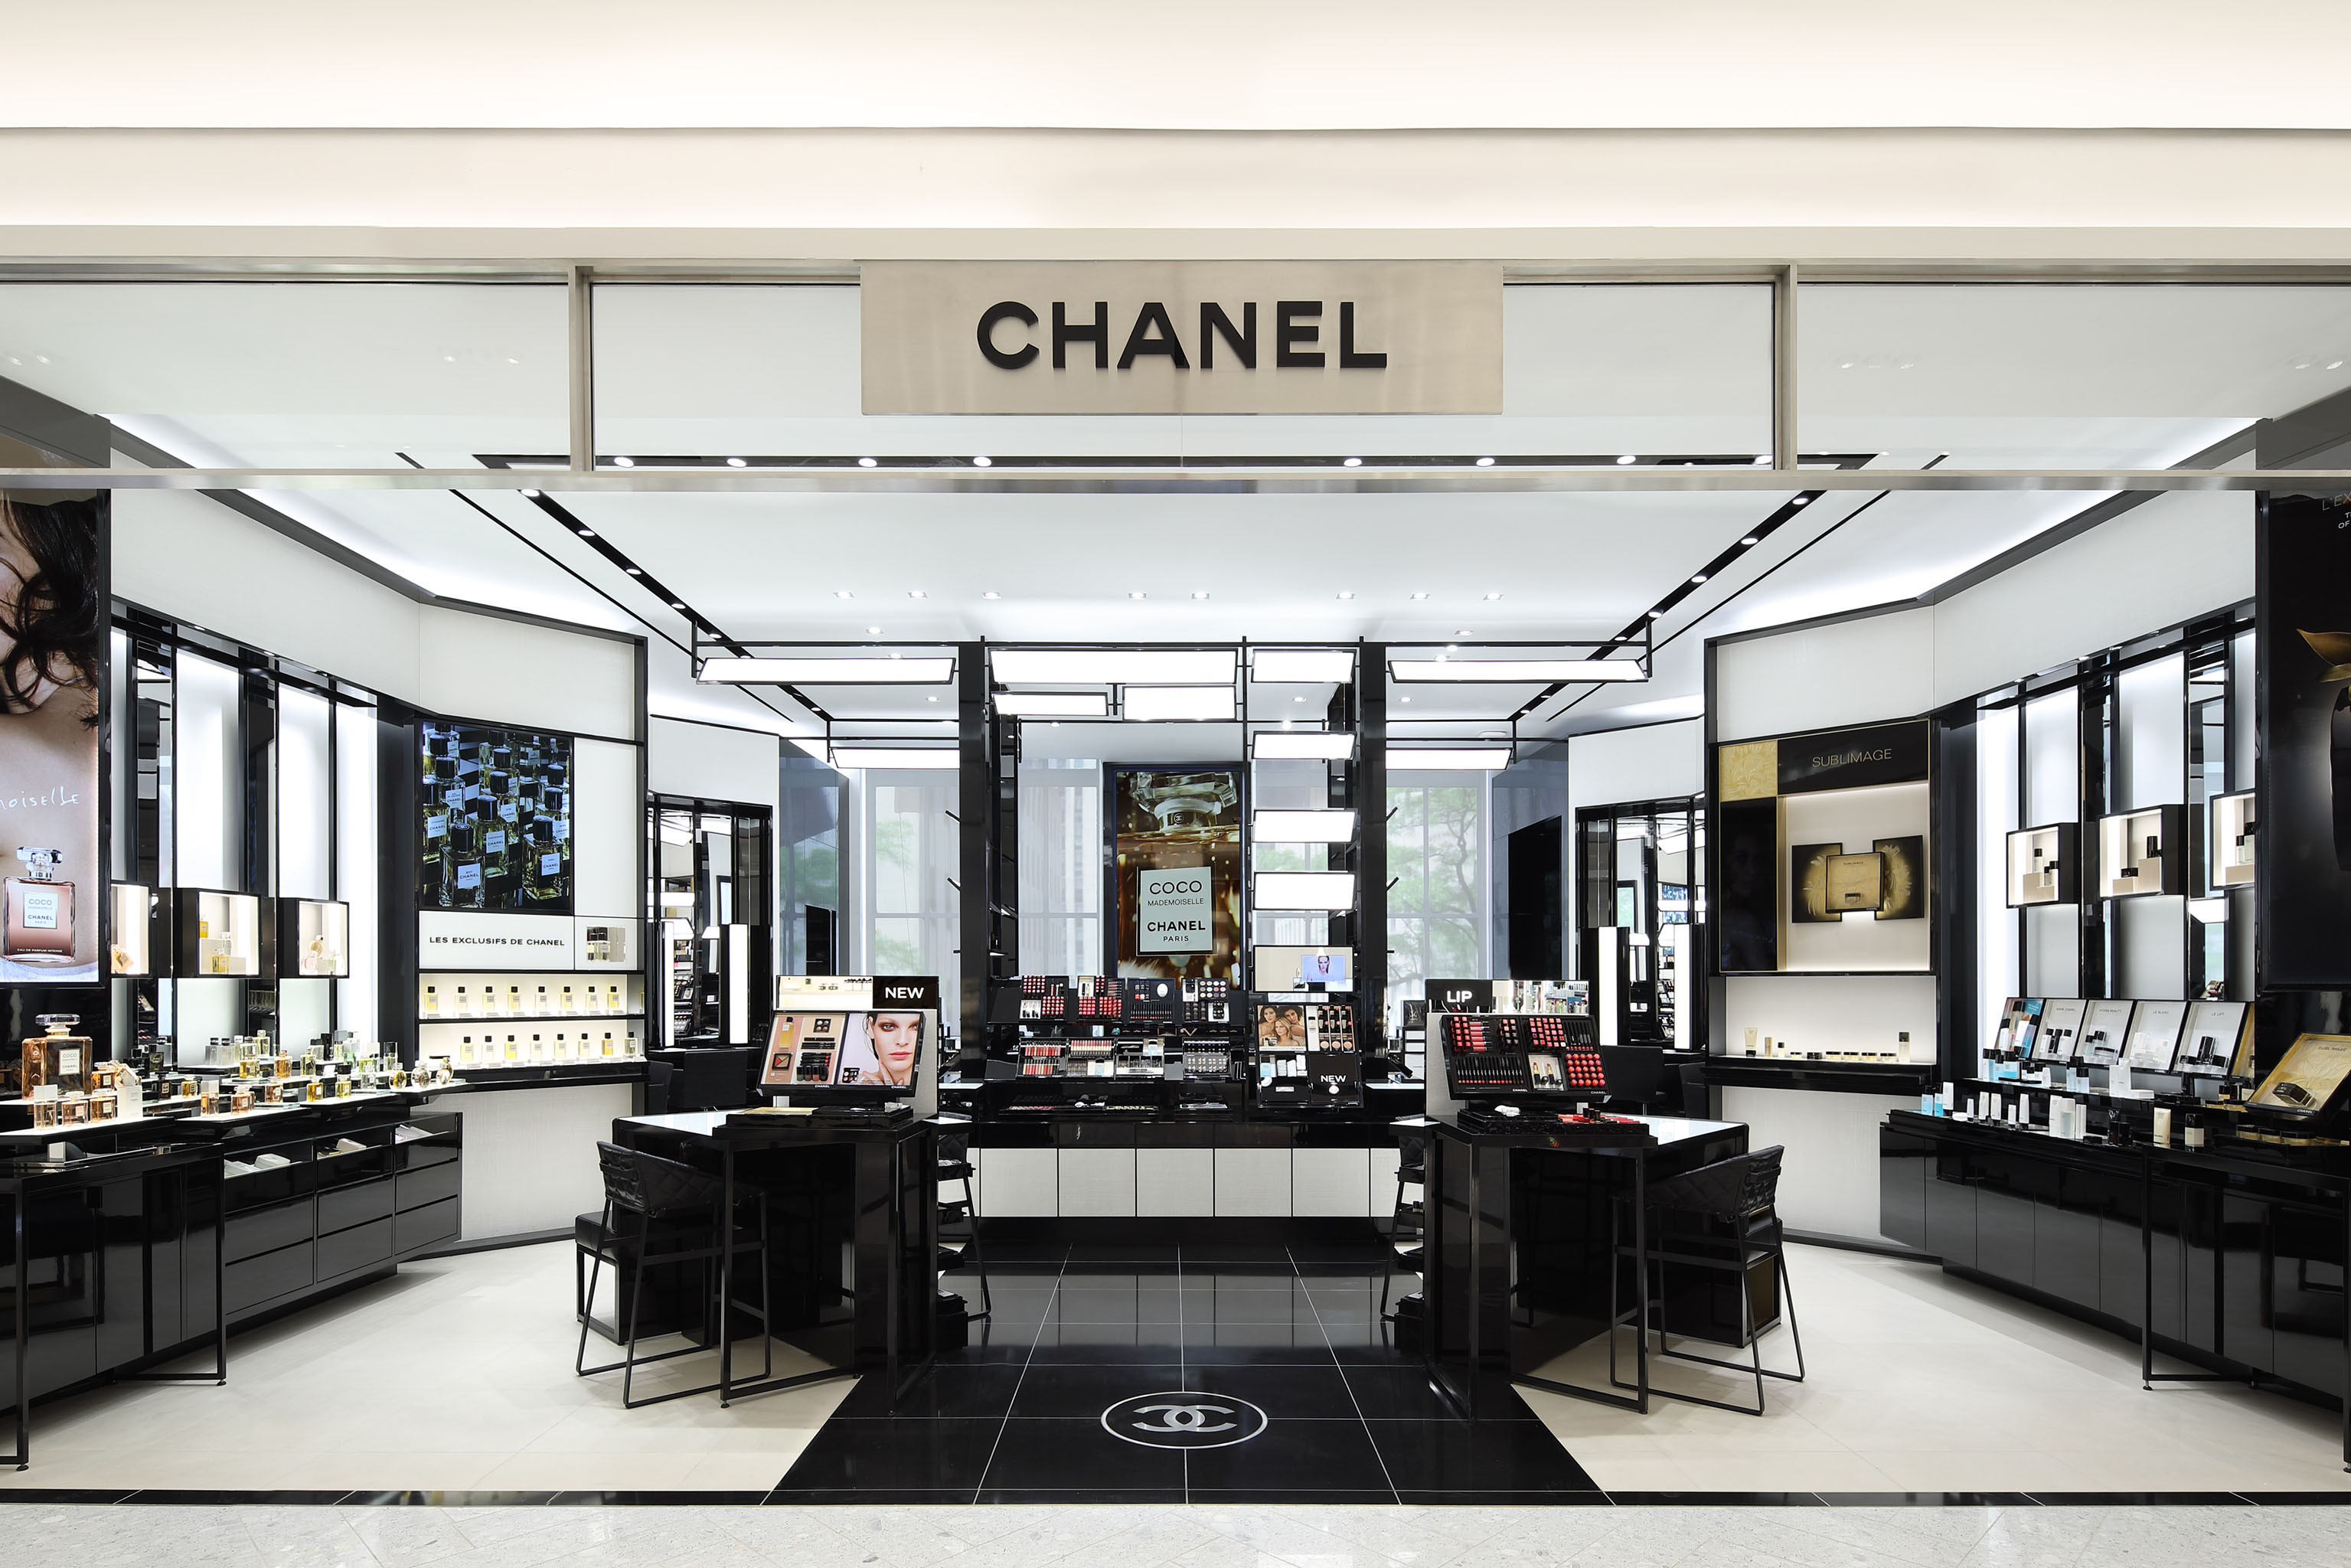 Chanel's Saks Fifth Avenue Fragrance & Beauty department in New York.